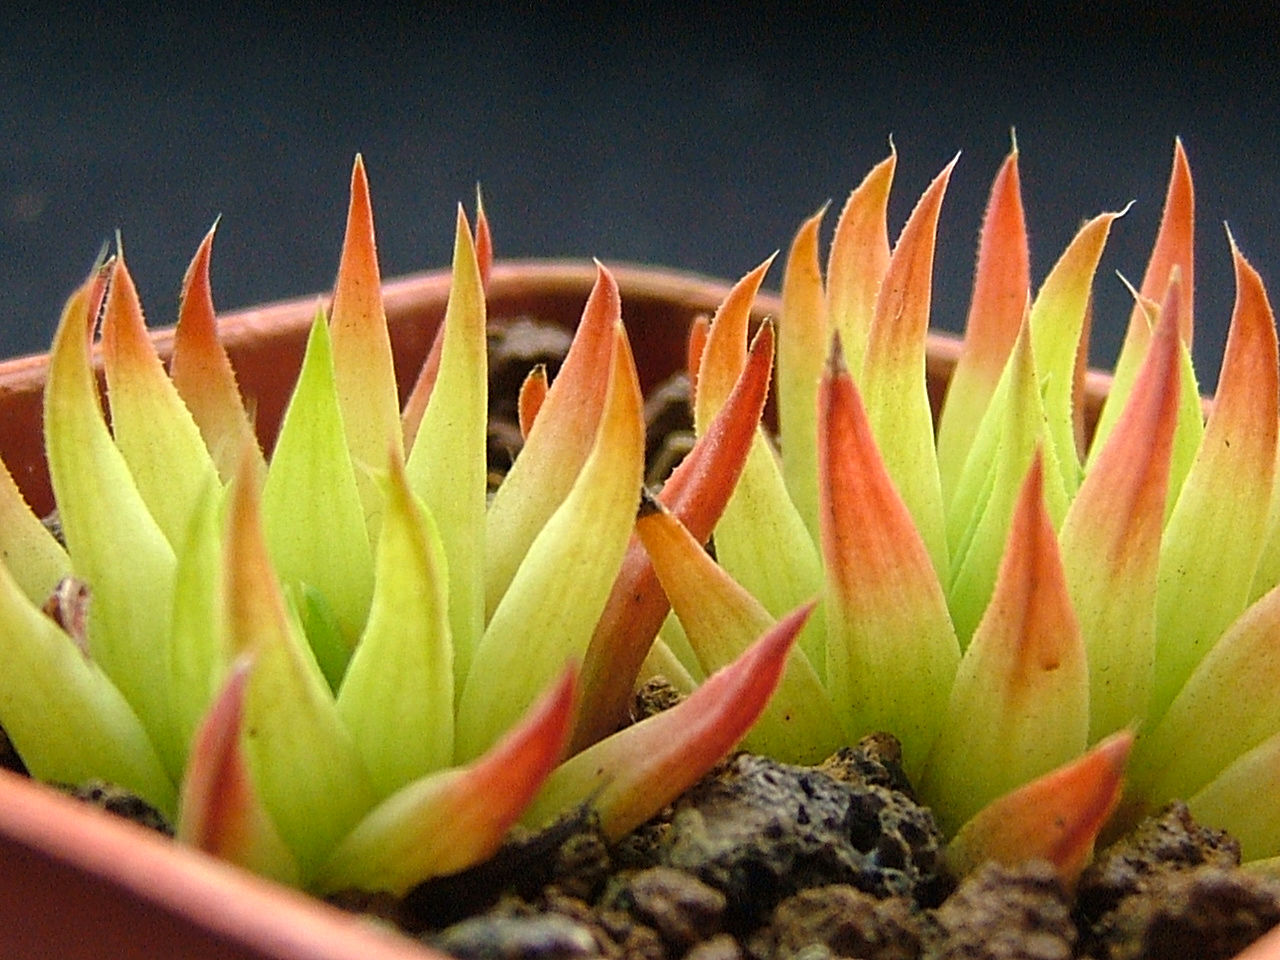 Haworthia monticola v.asema Ham435 Acquired this in Hong Kong in 1996